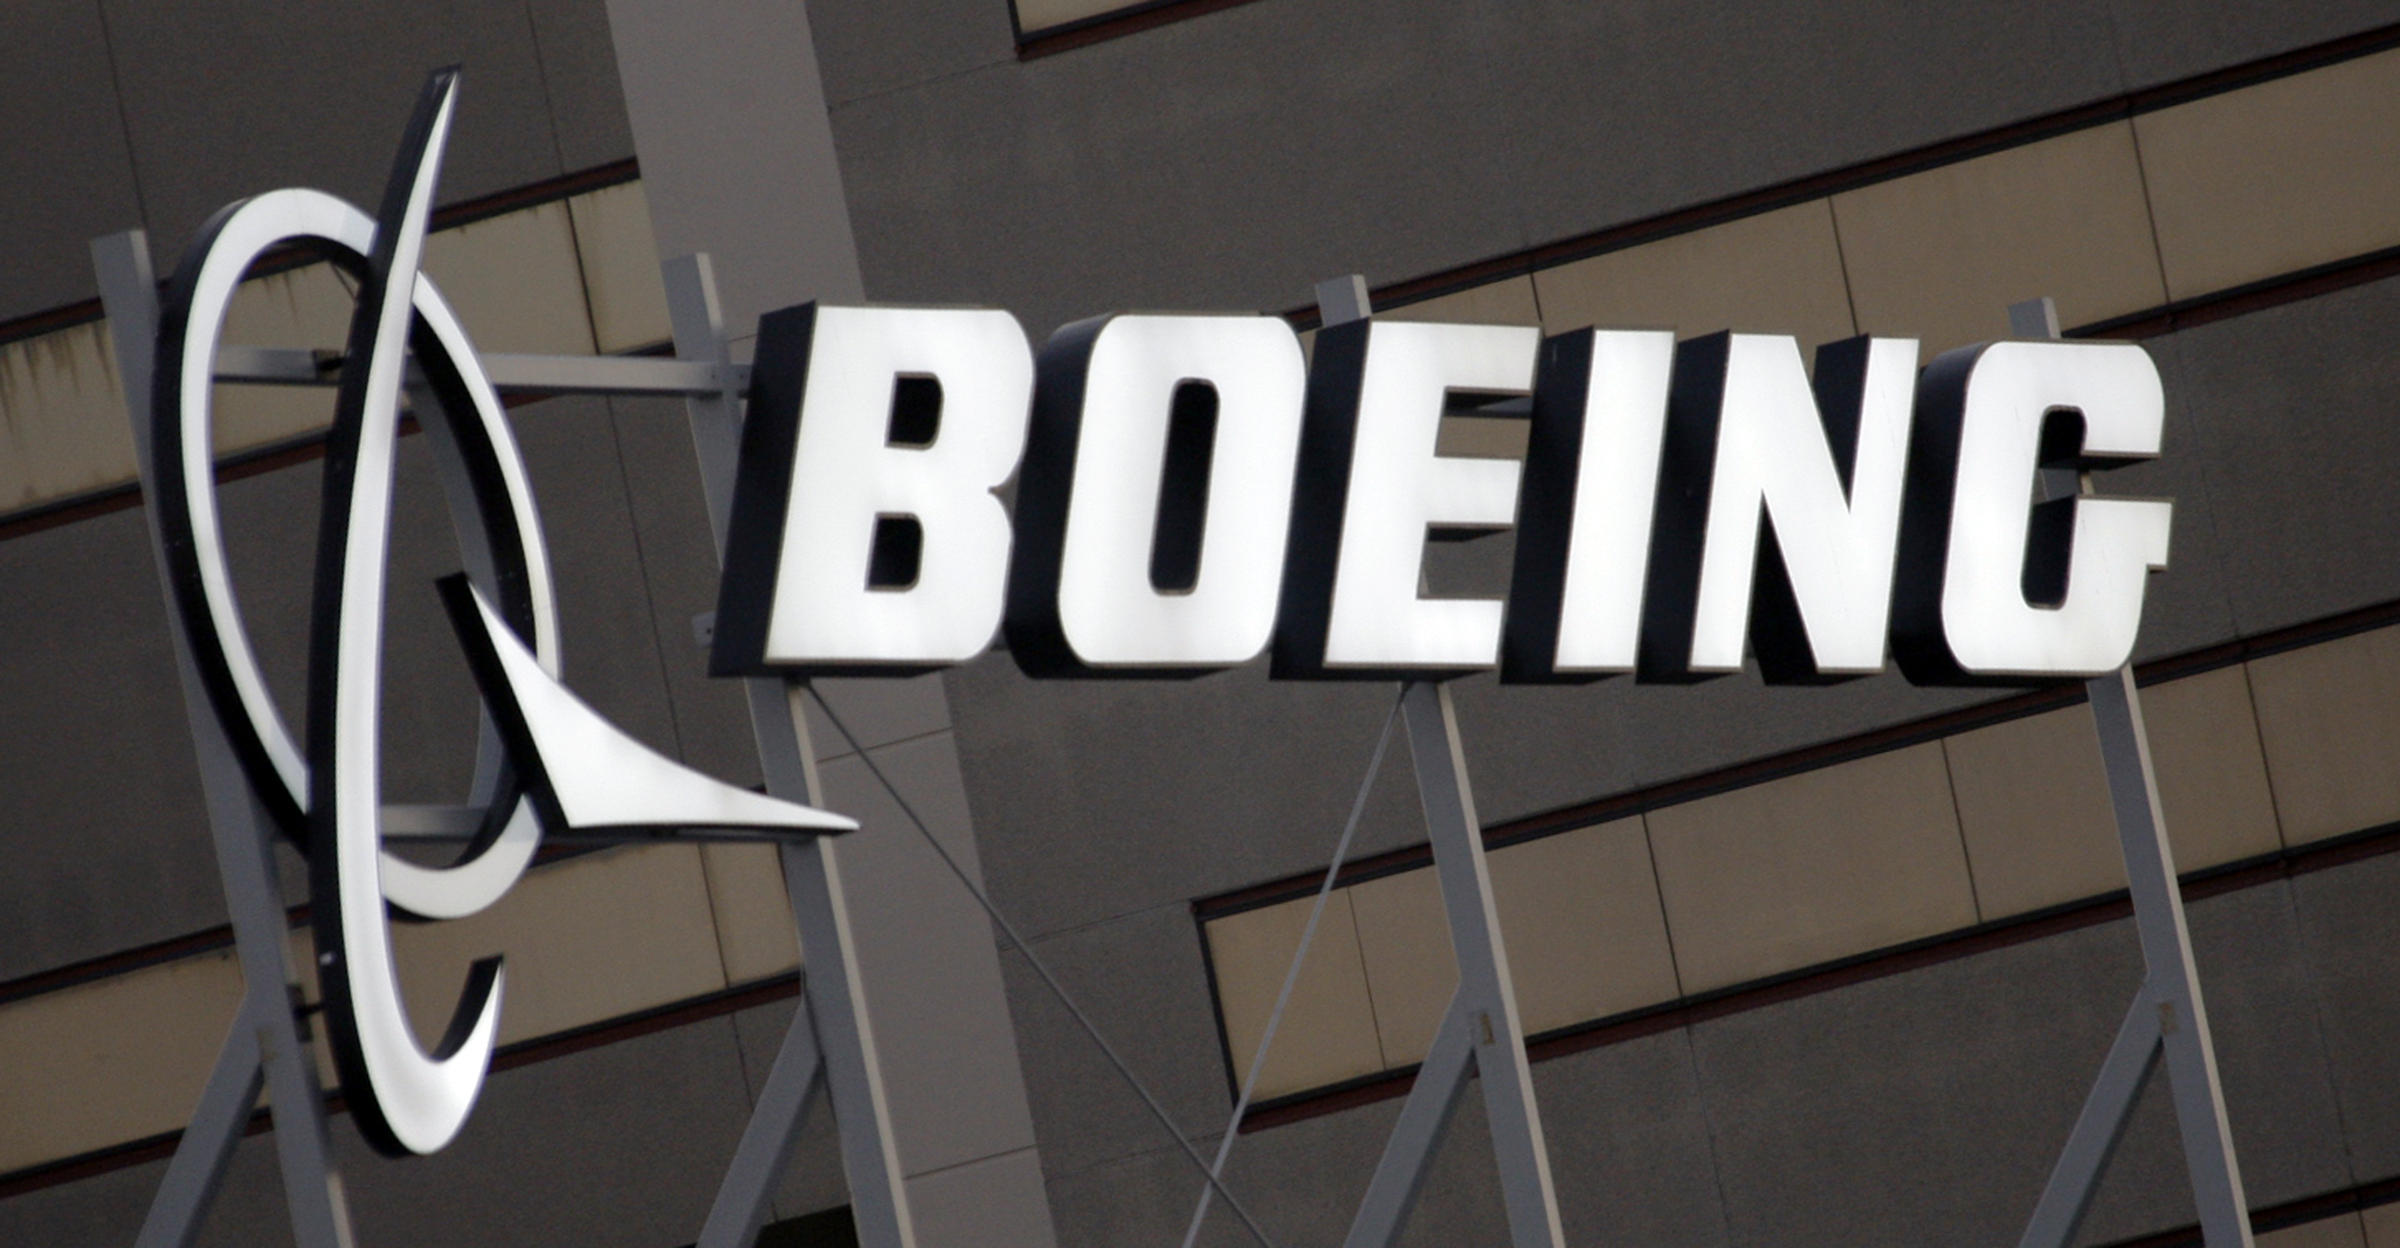 Boeing Agrees To Pay $57 Million To Settle Class Action Lawsuit Over